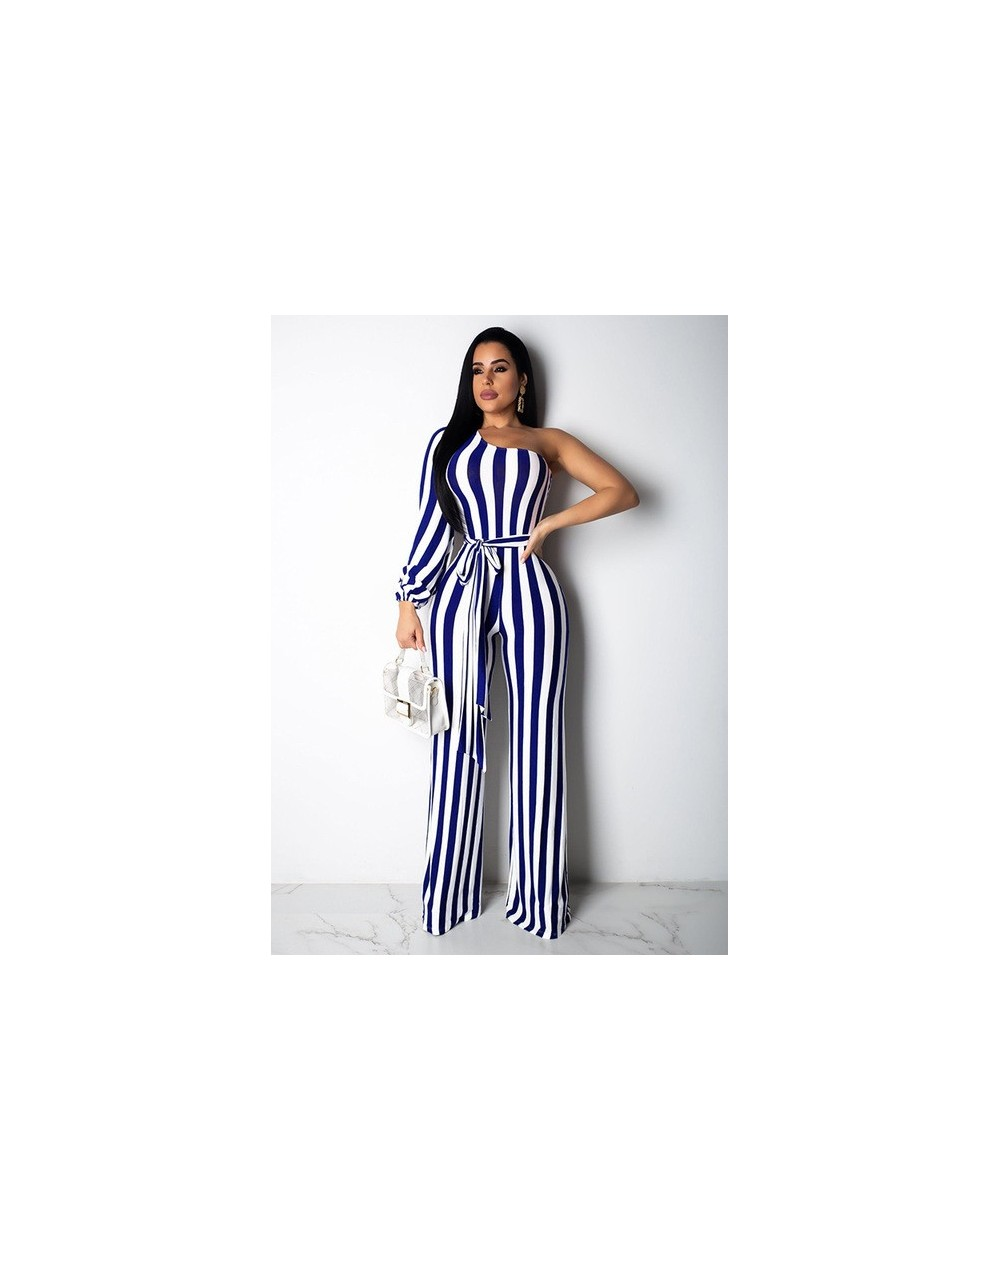 Echoine Striped One Shoulder Playsuit Jumpsuit Long Wide Leg Pants Rompers Long Sleeve With Belt 2019 New Hot Casual Jumpsui...